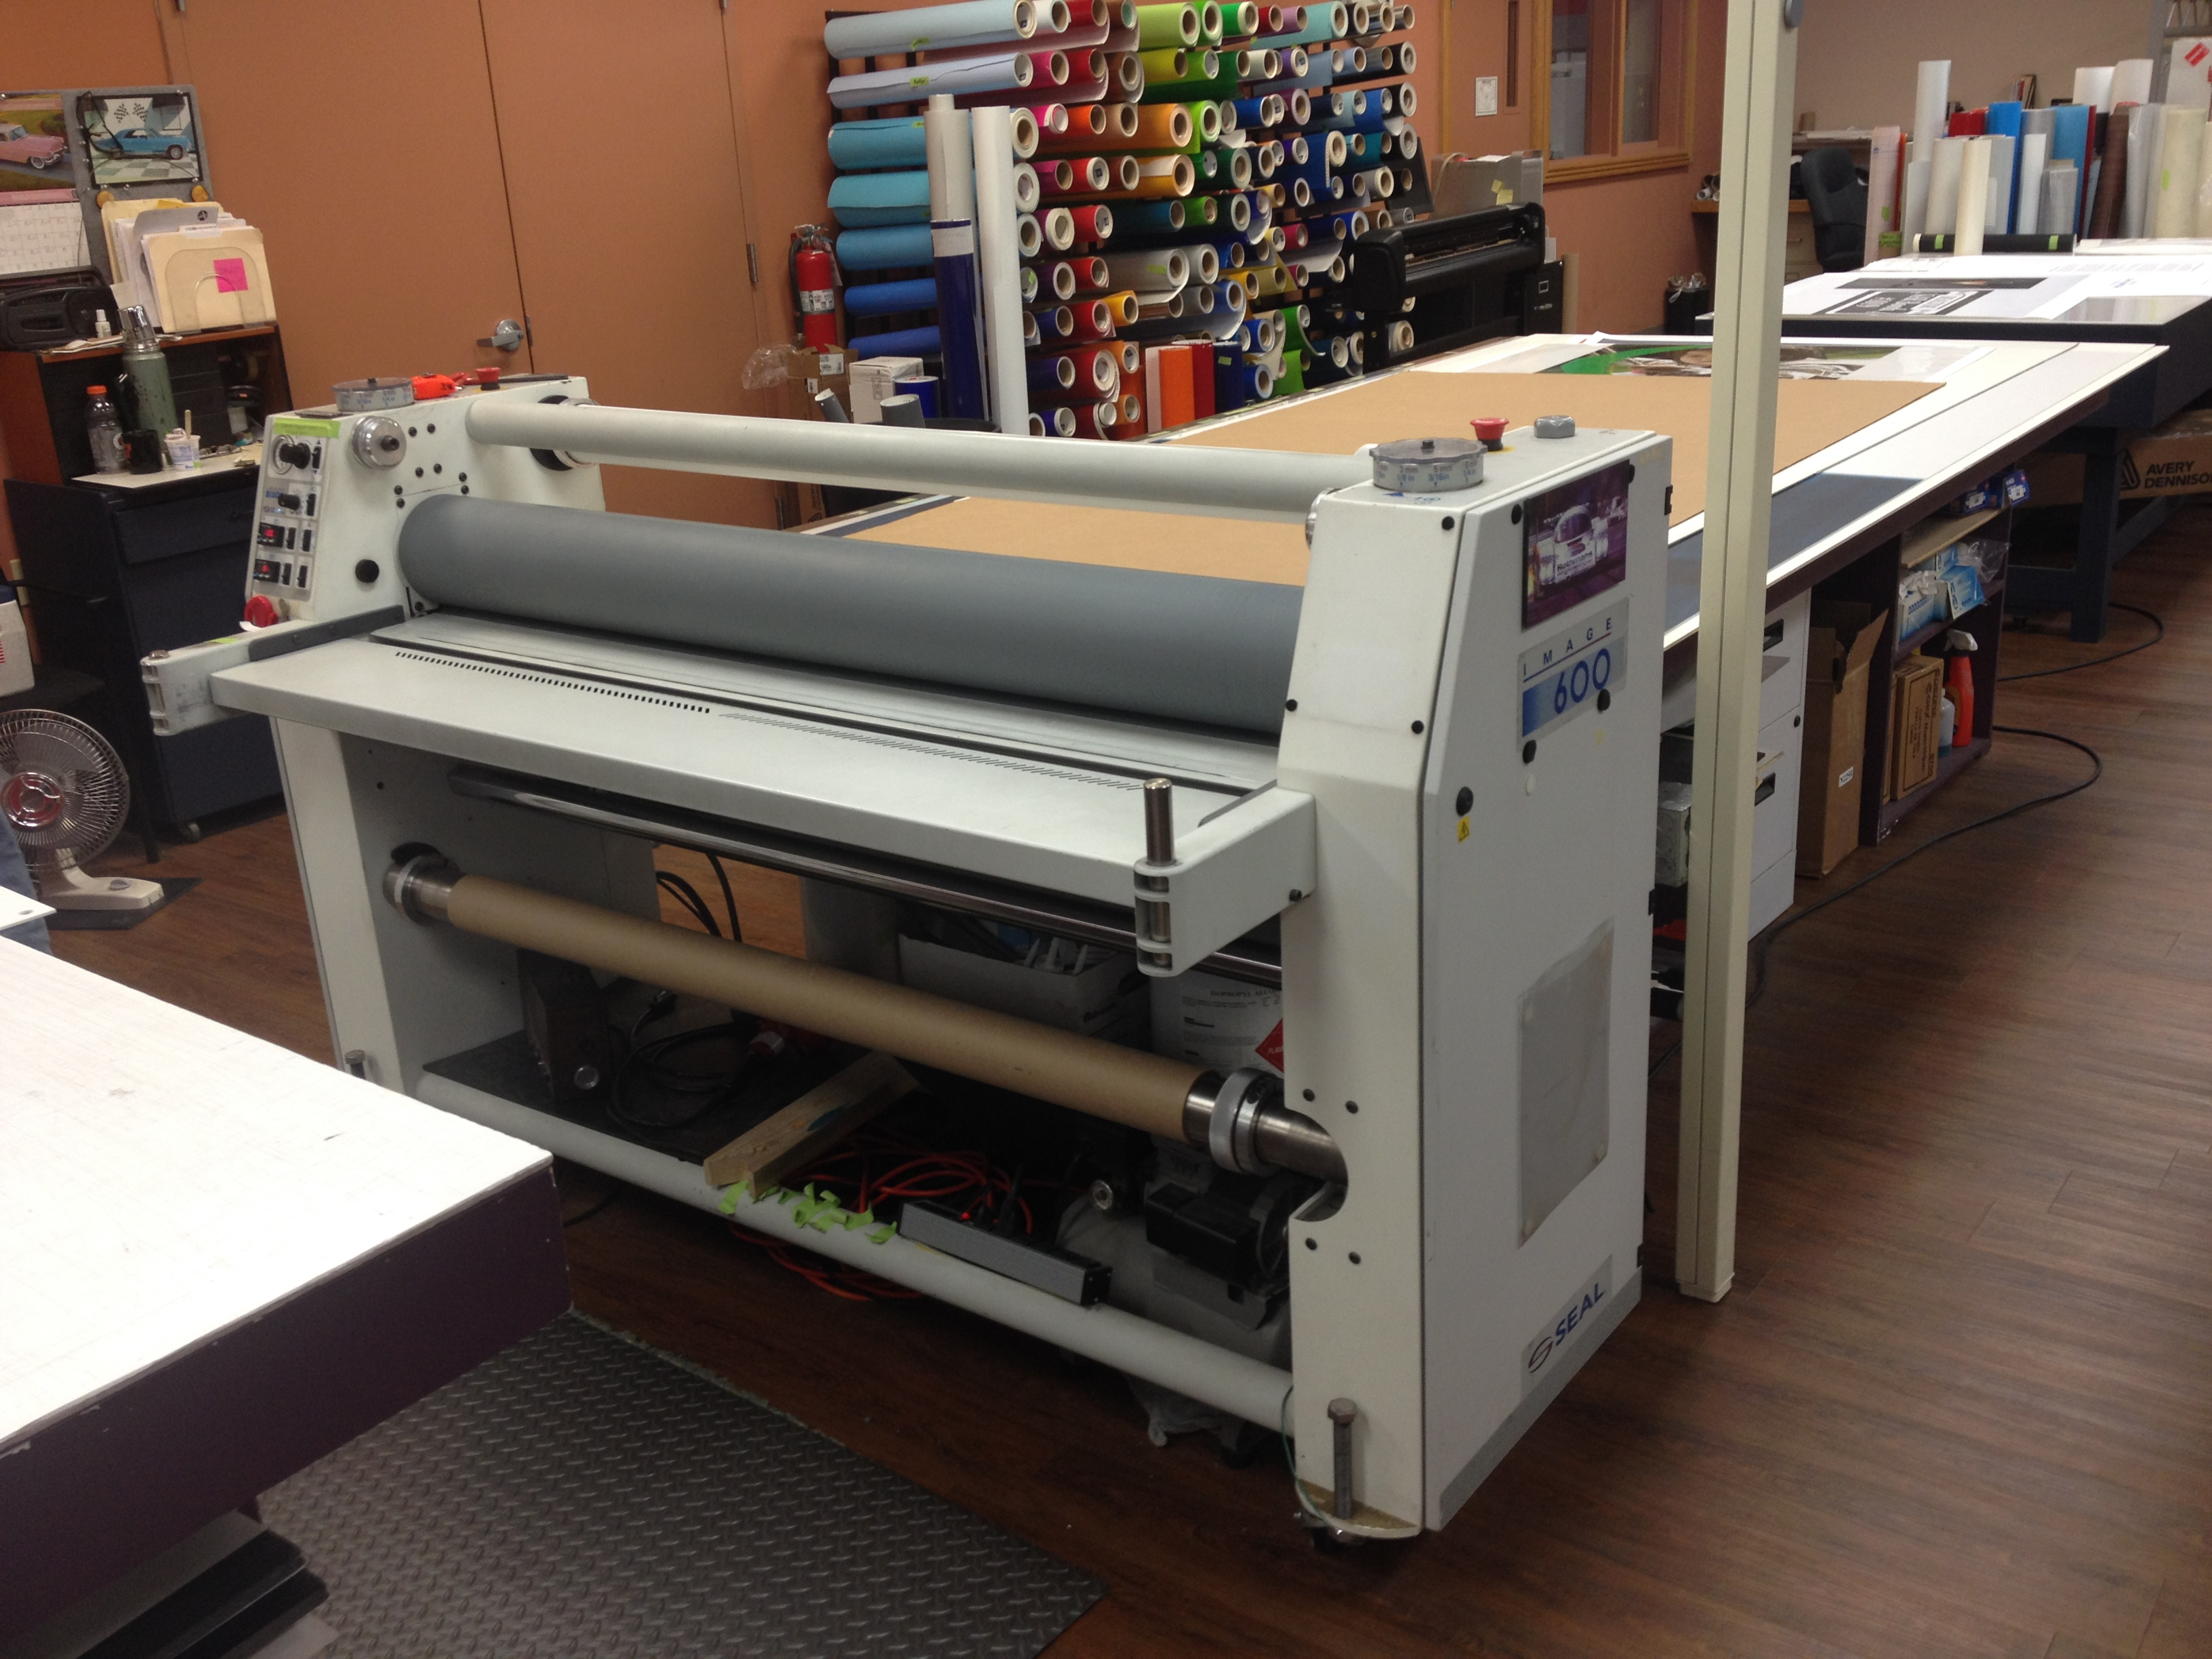 Picture of Printing and Laminating Your Steve Skin.